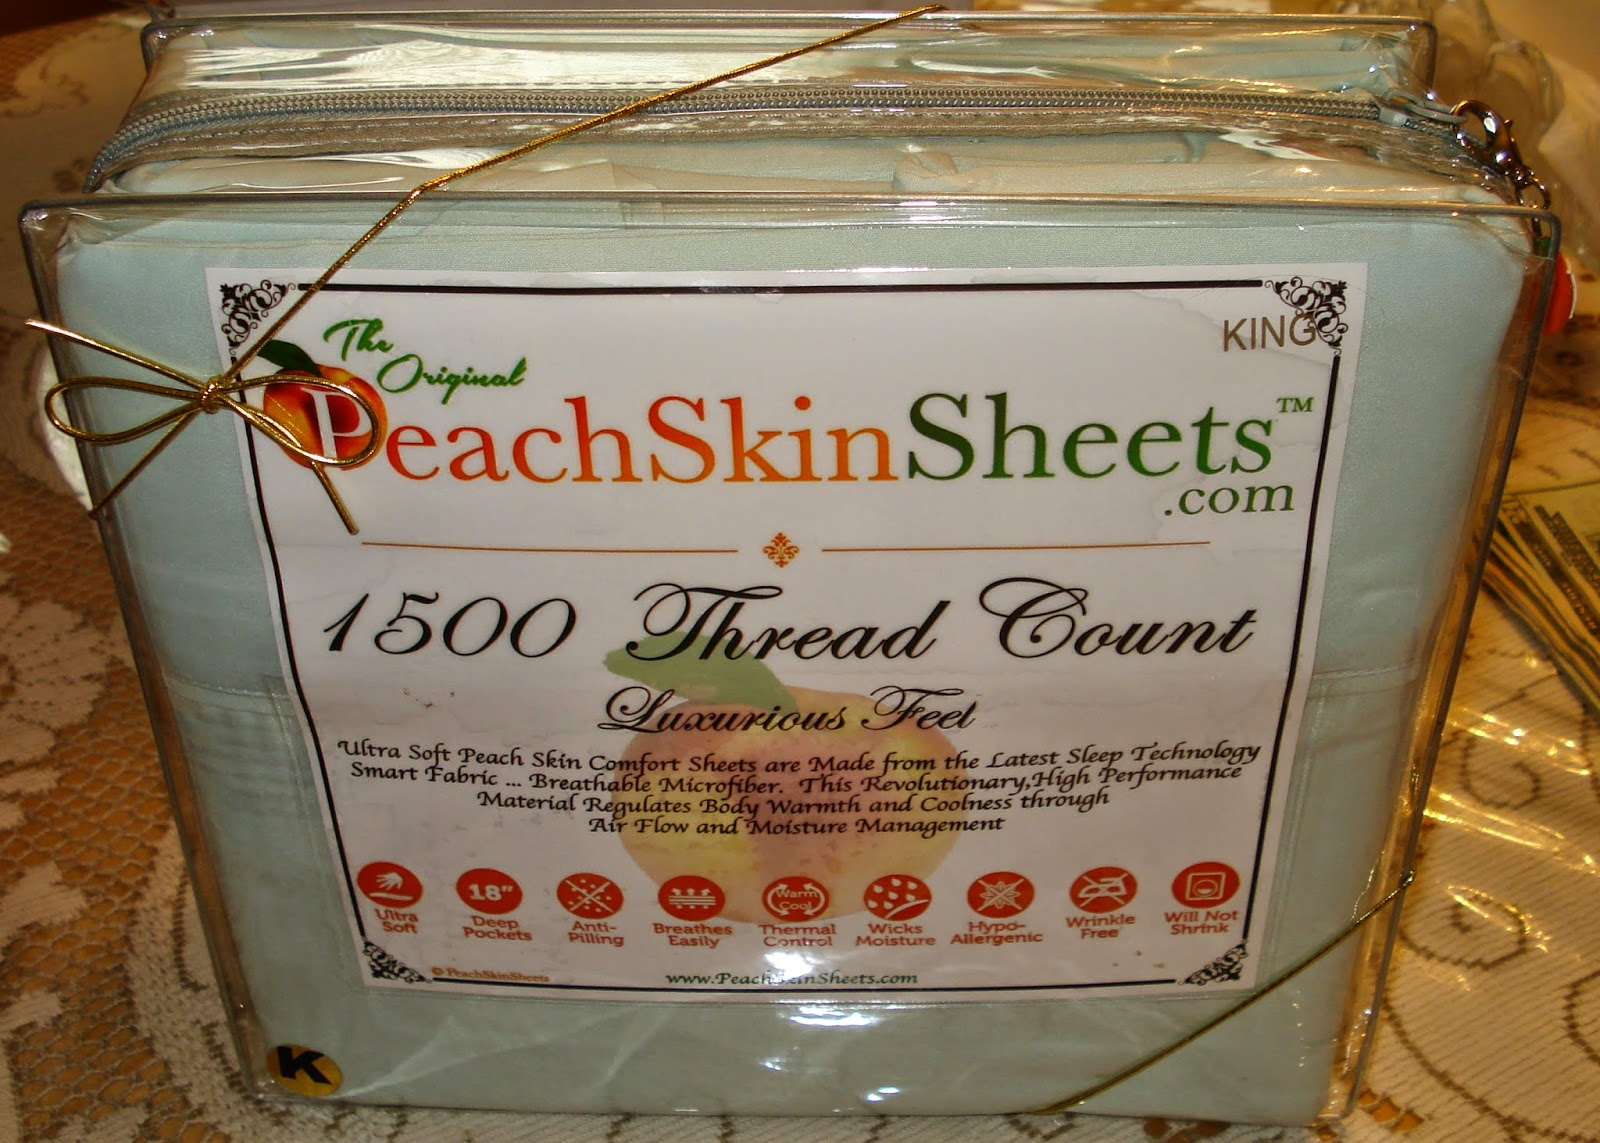 Enter to win the PeachSkinSheets Giveaway. Ends 8/26.